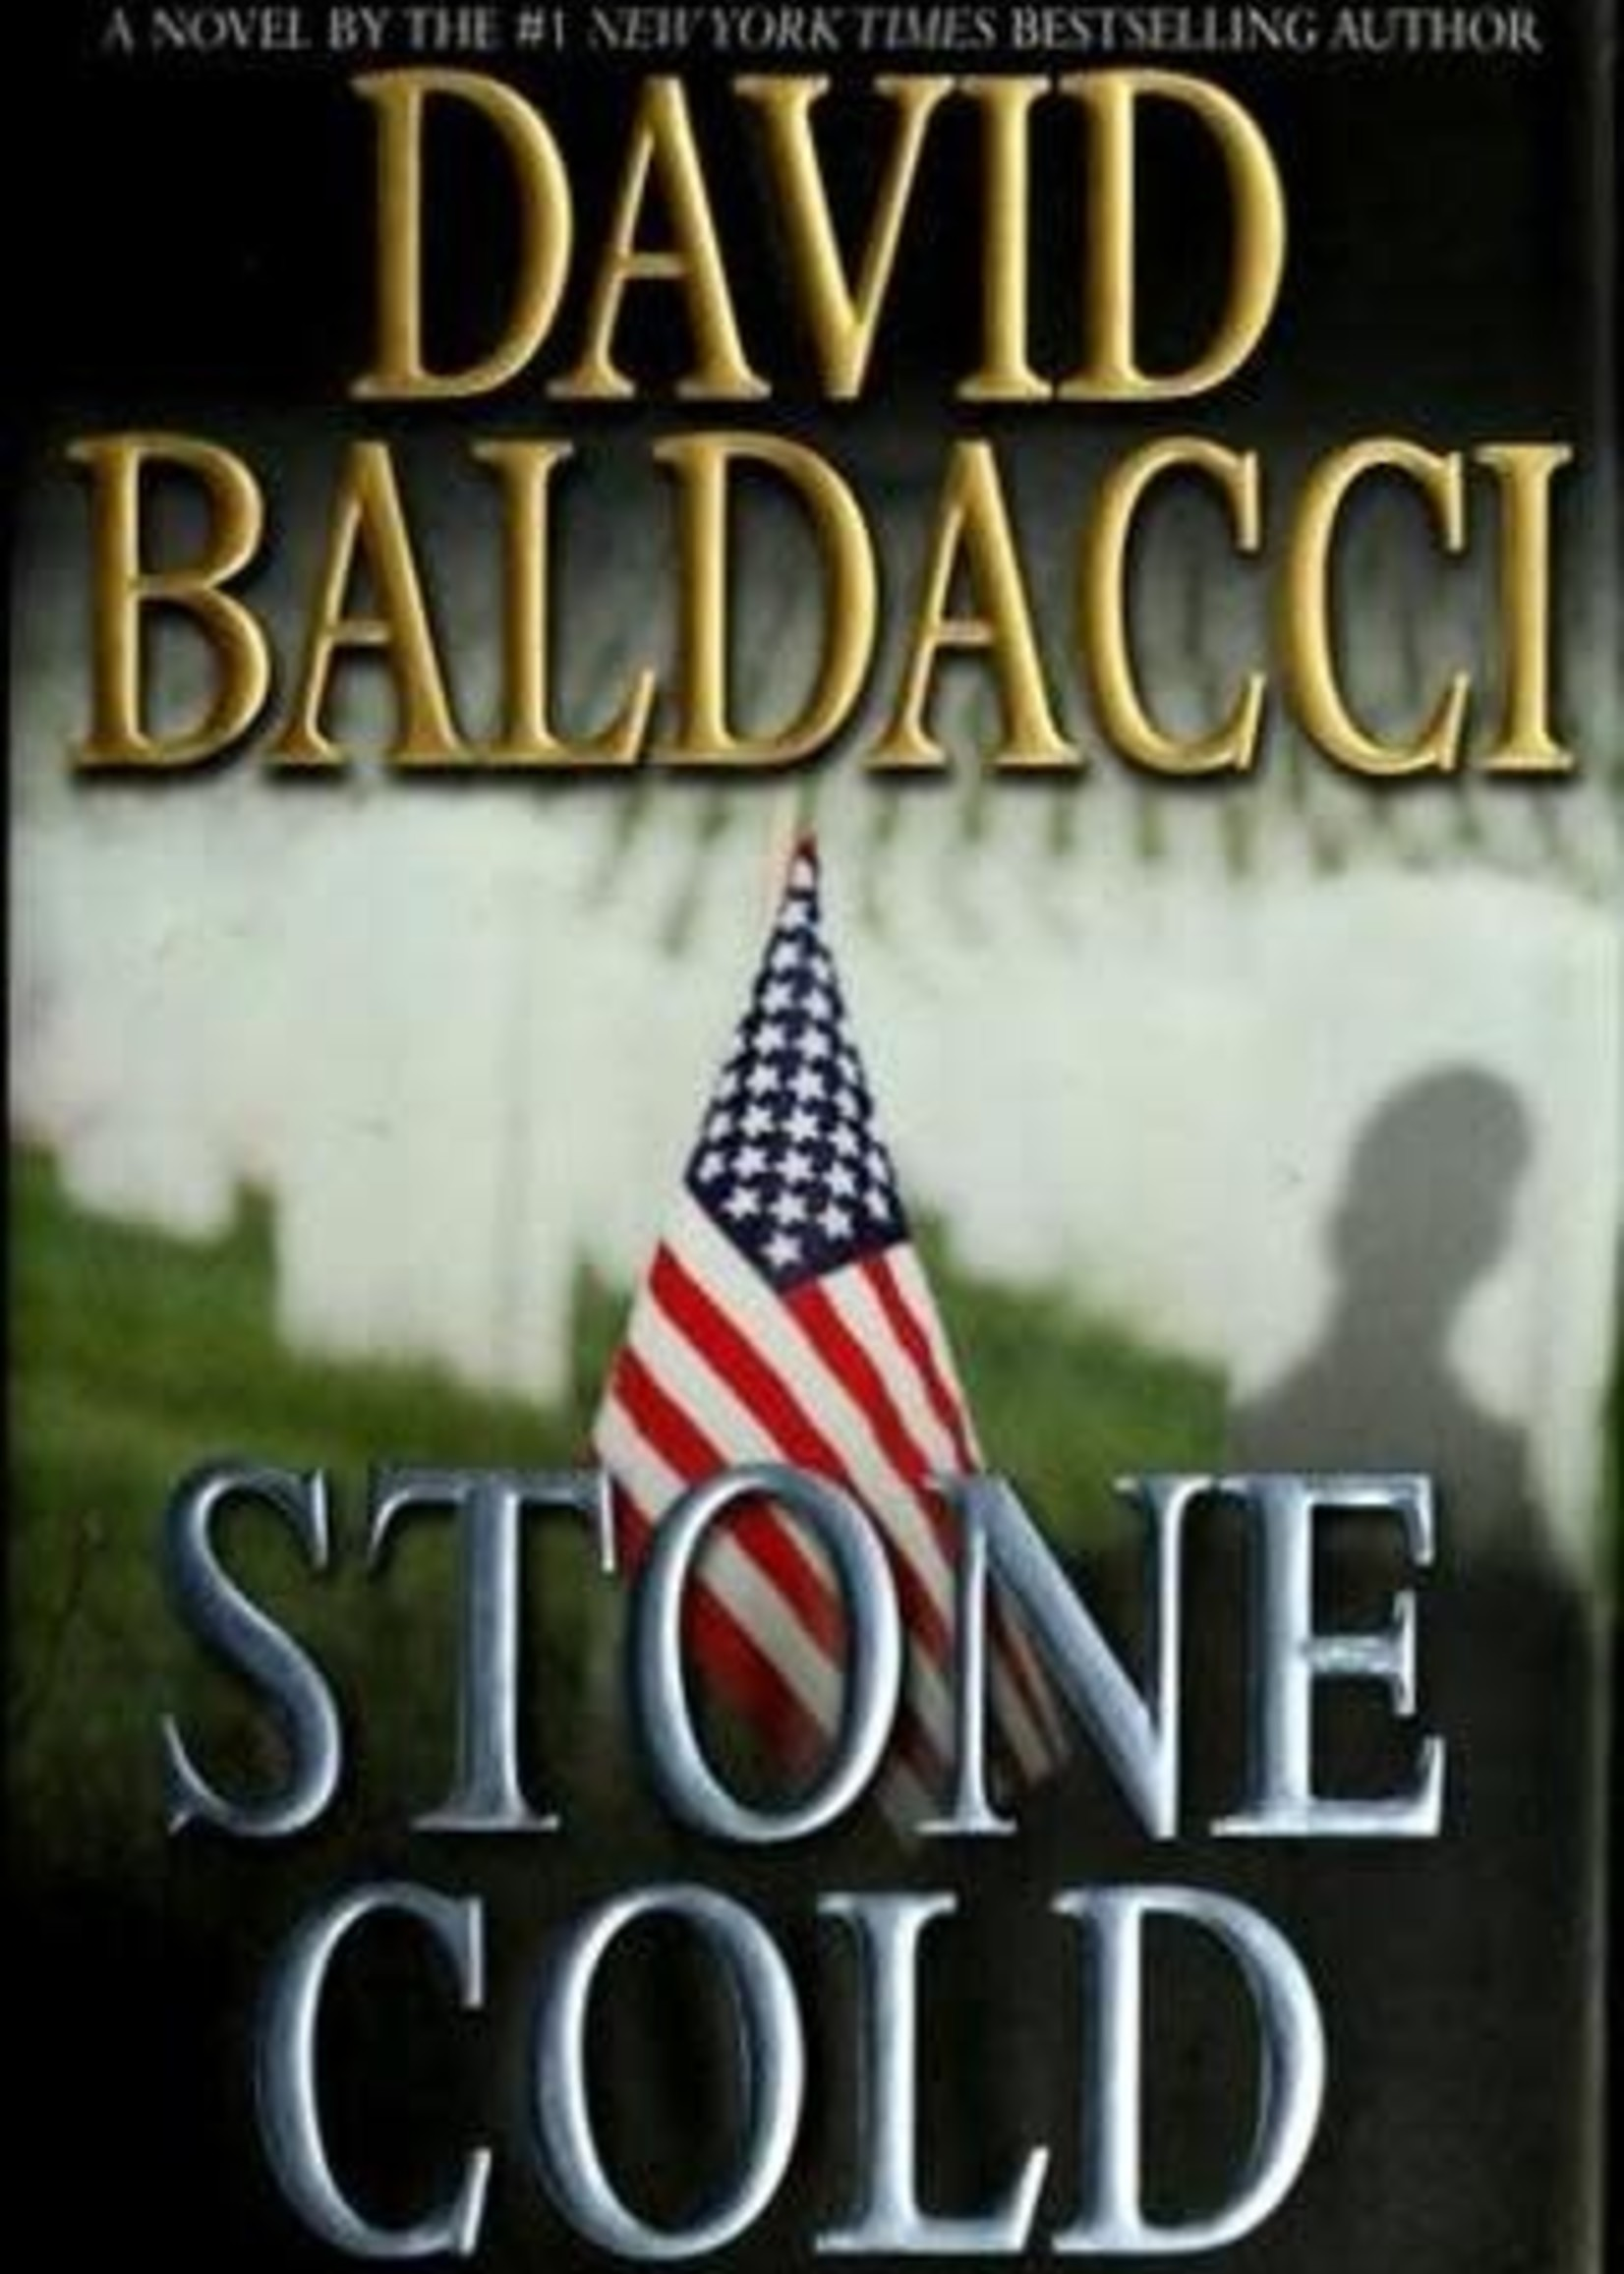 USED - Stone Cold by David Baldacci